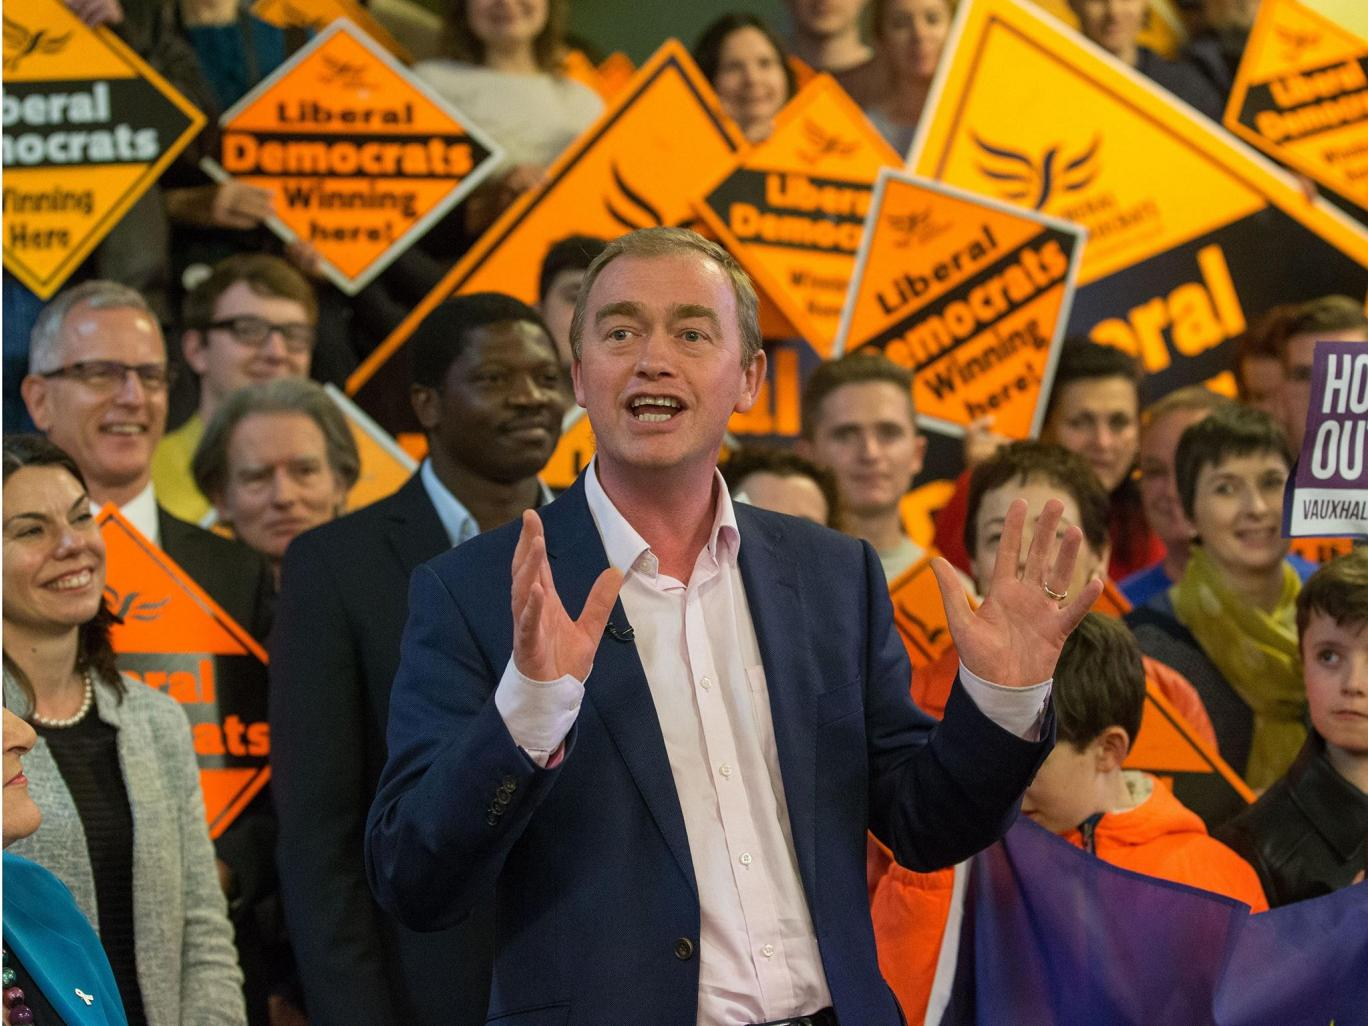 If you want to understand why the Lib Dems are making a comeback, just look to Eastbourne and Lewes